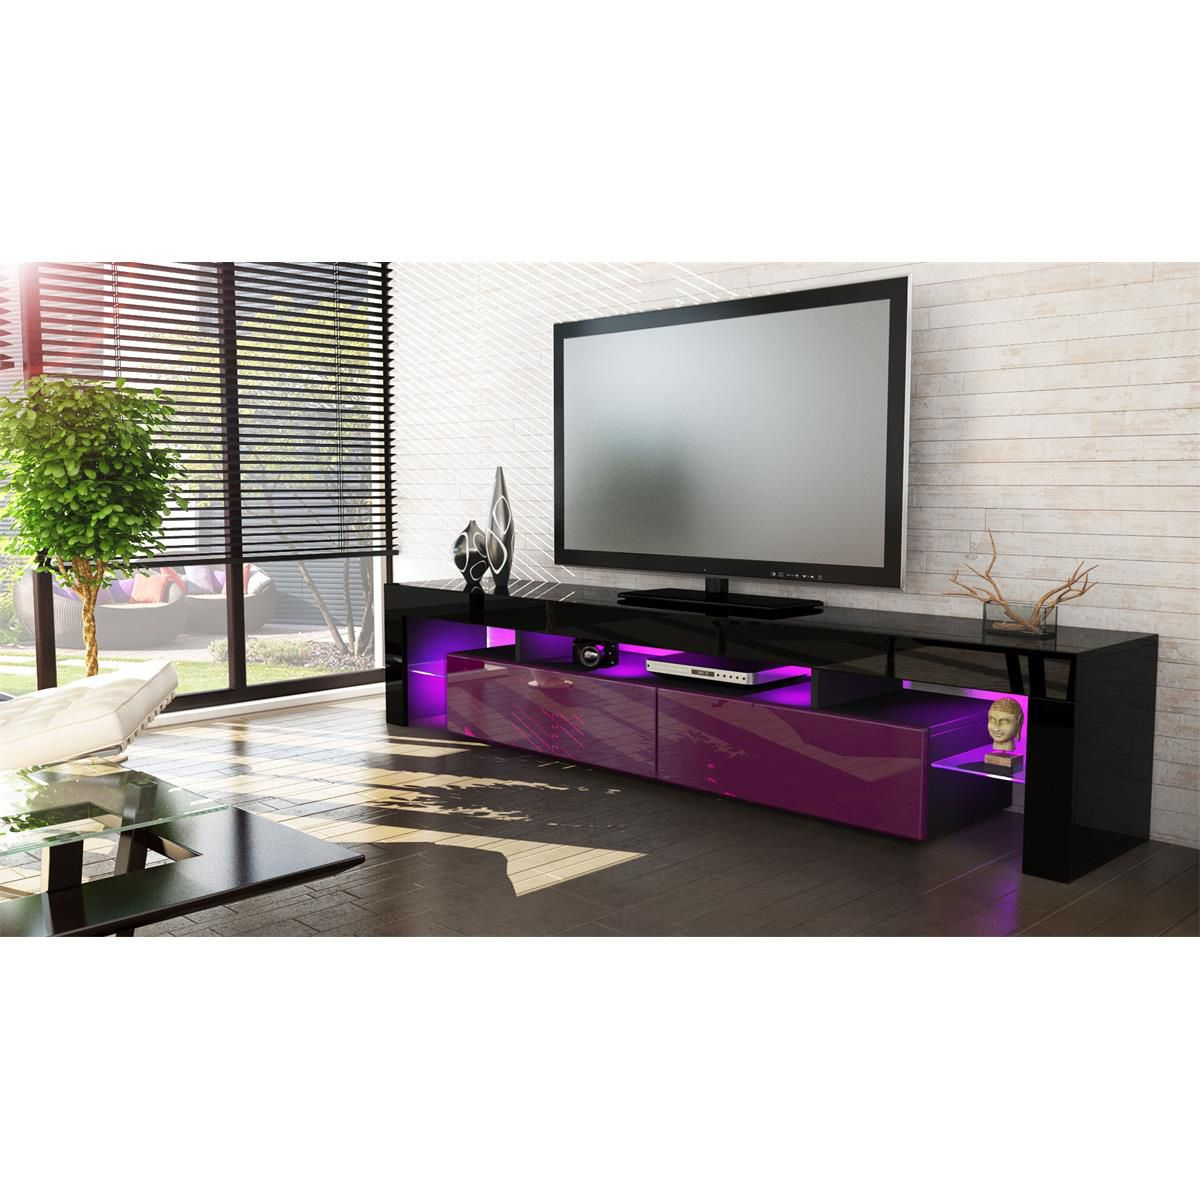 Domovero Is Proud To Present The Helios Tv Unit Furniture This Tv  # Muebles Fiasini